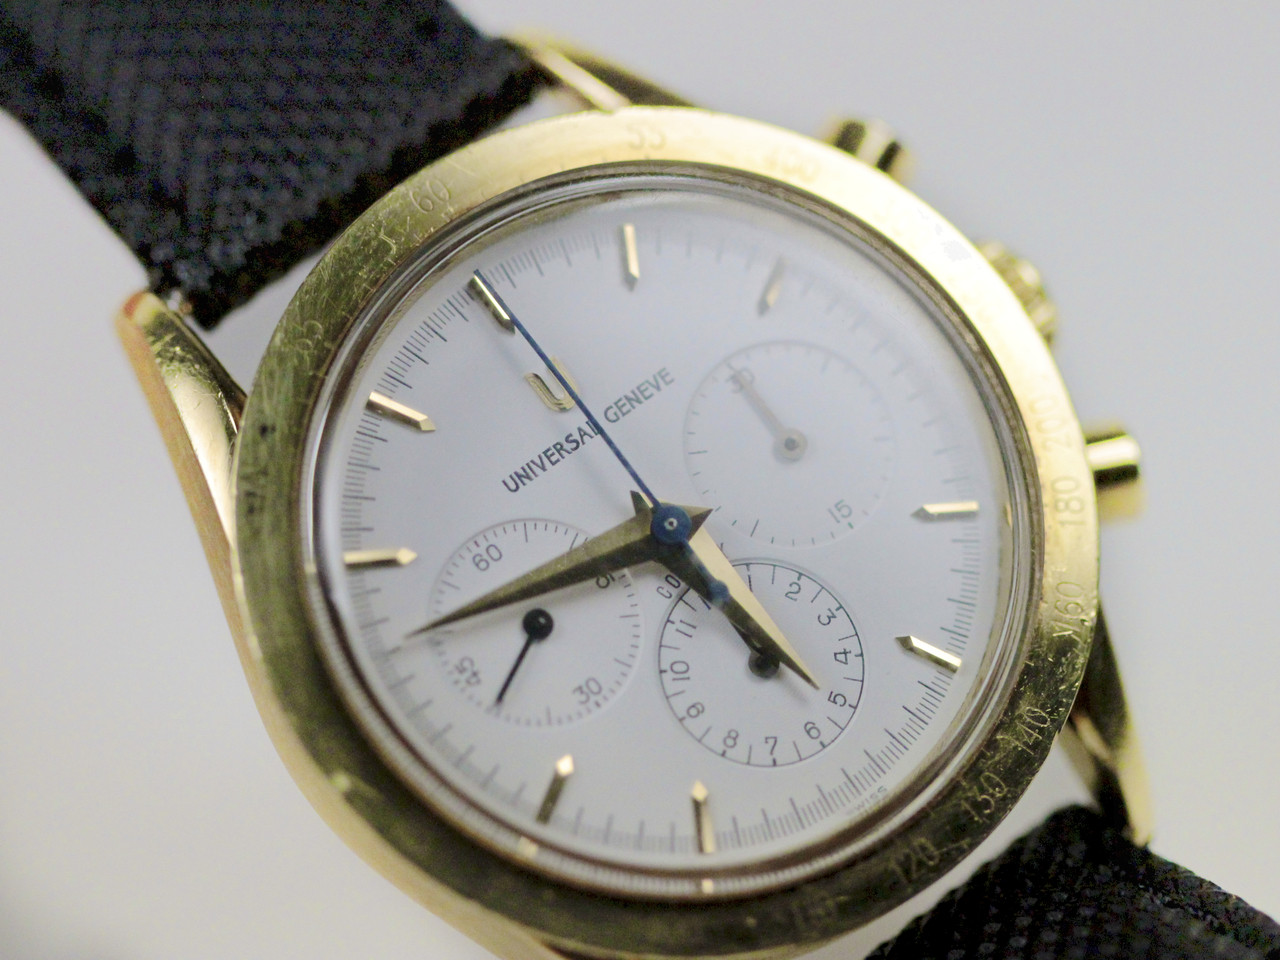 Universal Geneve Vintage Watch - Compax Chronograph 184.445.4080093 18K Yellow Gold - for sale online www.Legendoftime.com and in store Chicago Watch Center